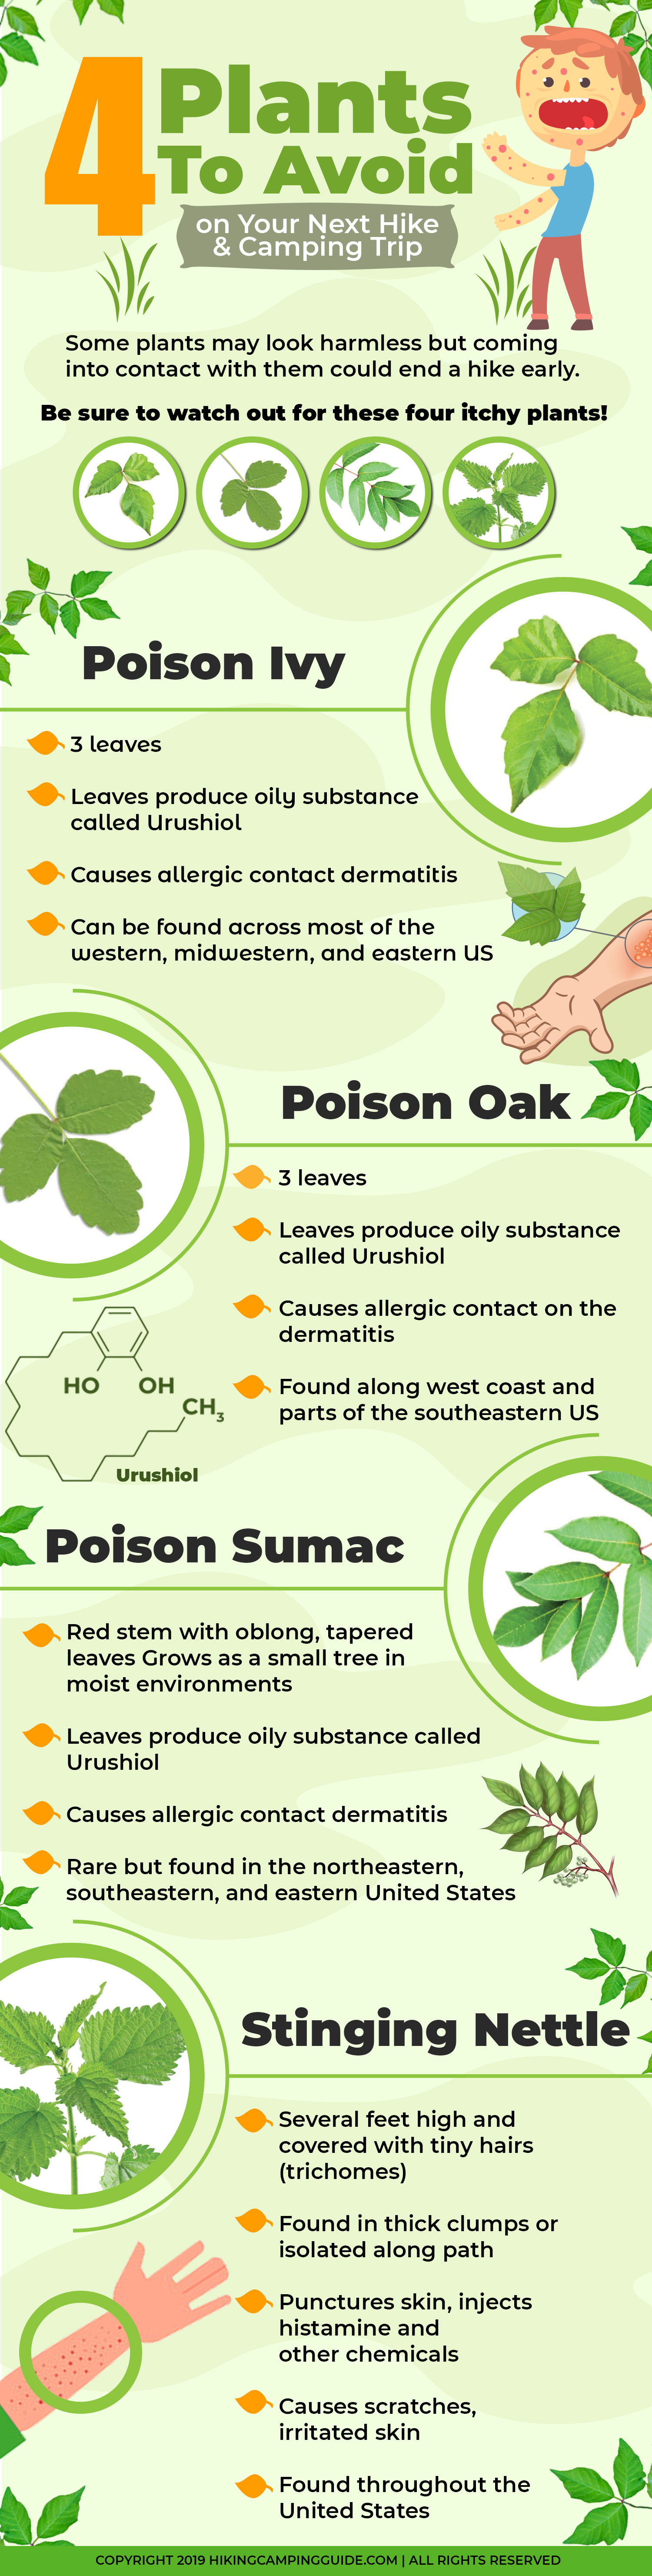 Going Hiking? 4 Green Plants You Must Avoid! - Infographic